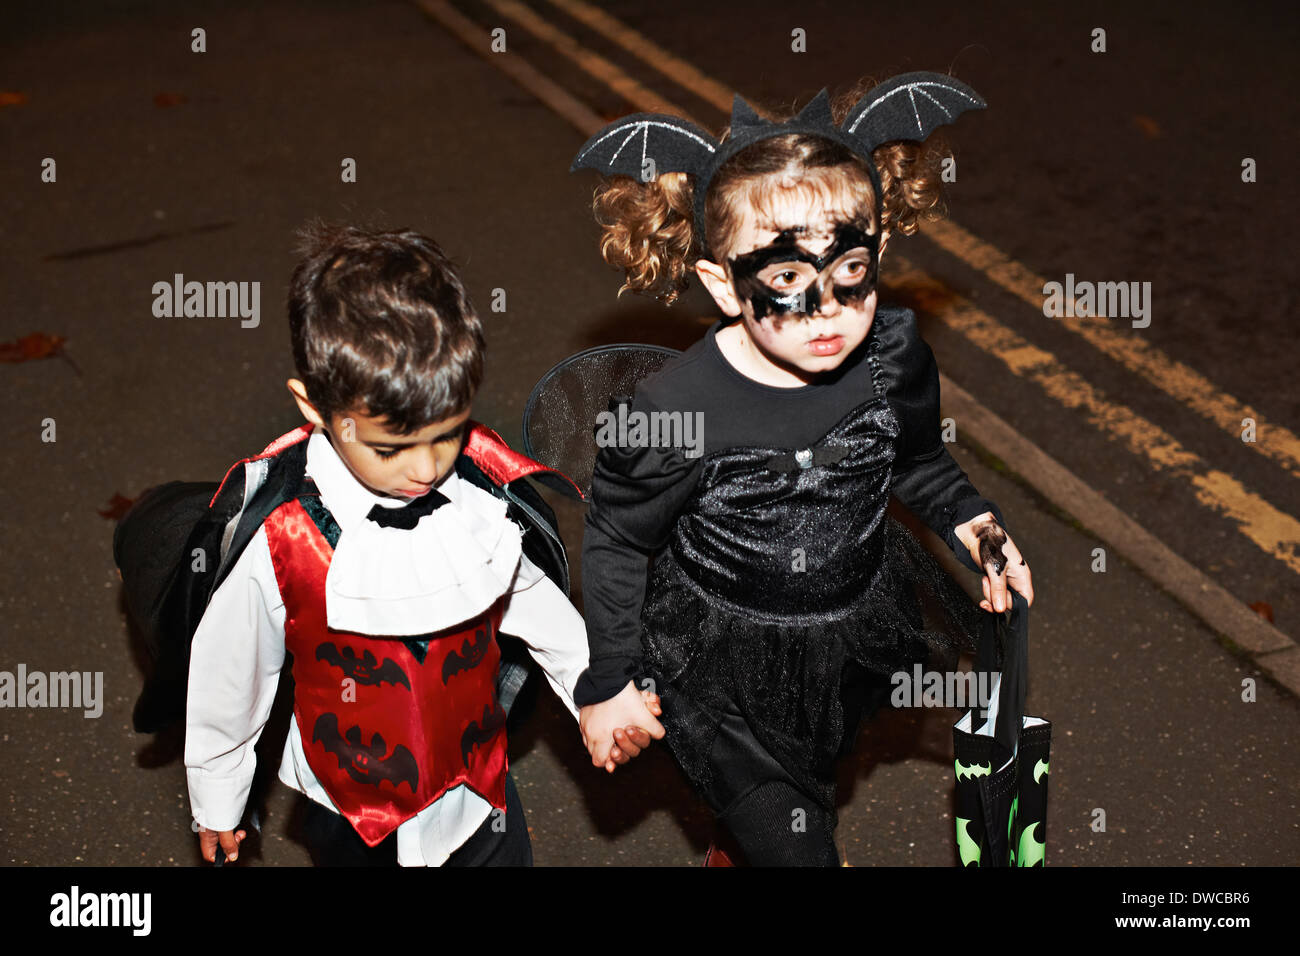 Girl and toddler trick or treating at night - Stock Image